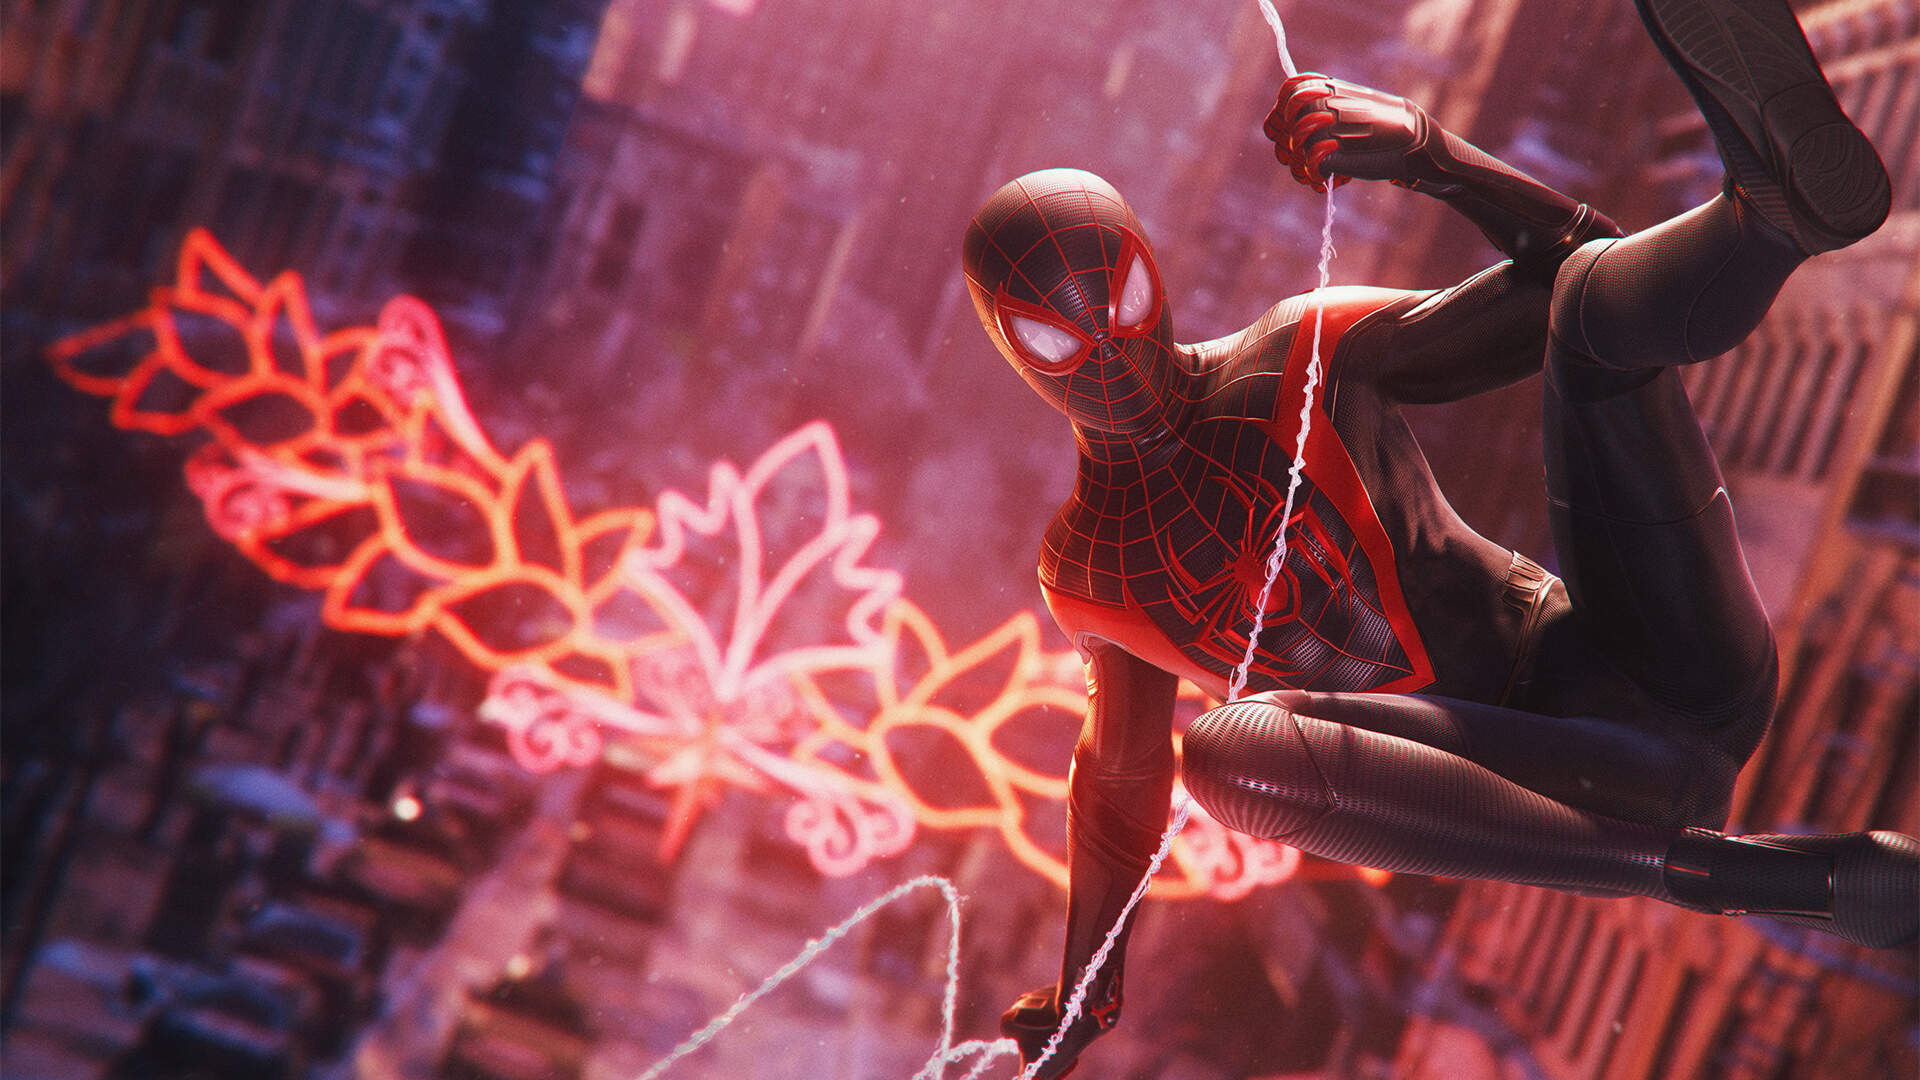 Marvel's Spider-Man: Miles Morales Is Coming to Both PS4 and PS5 [Update: It's a PS5 Launch Title]